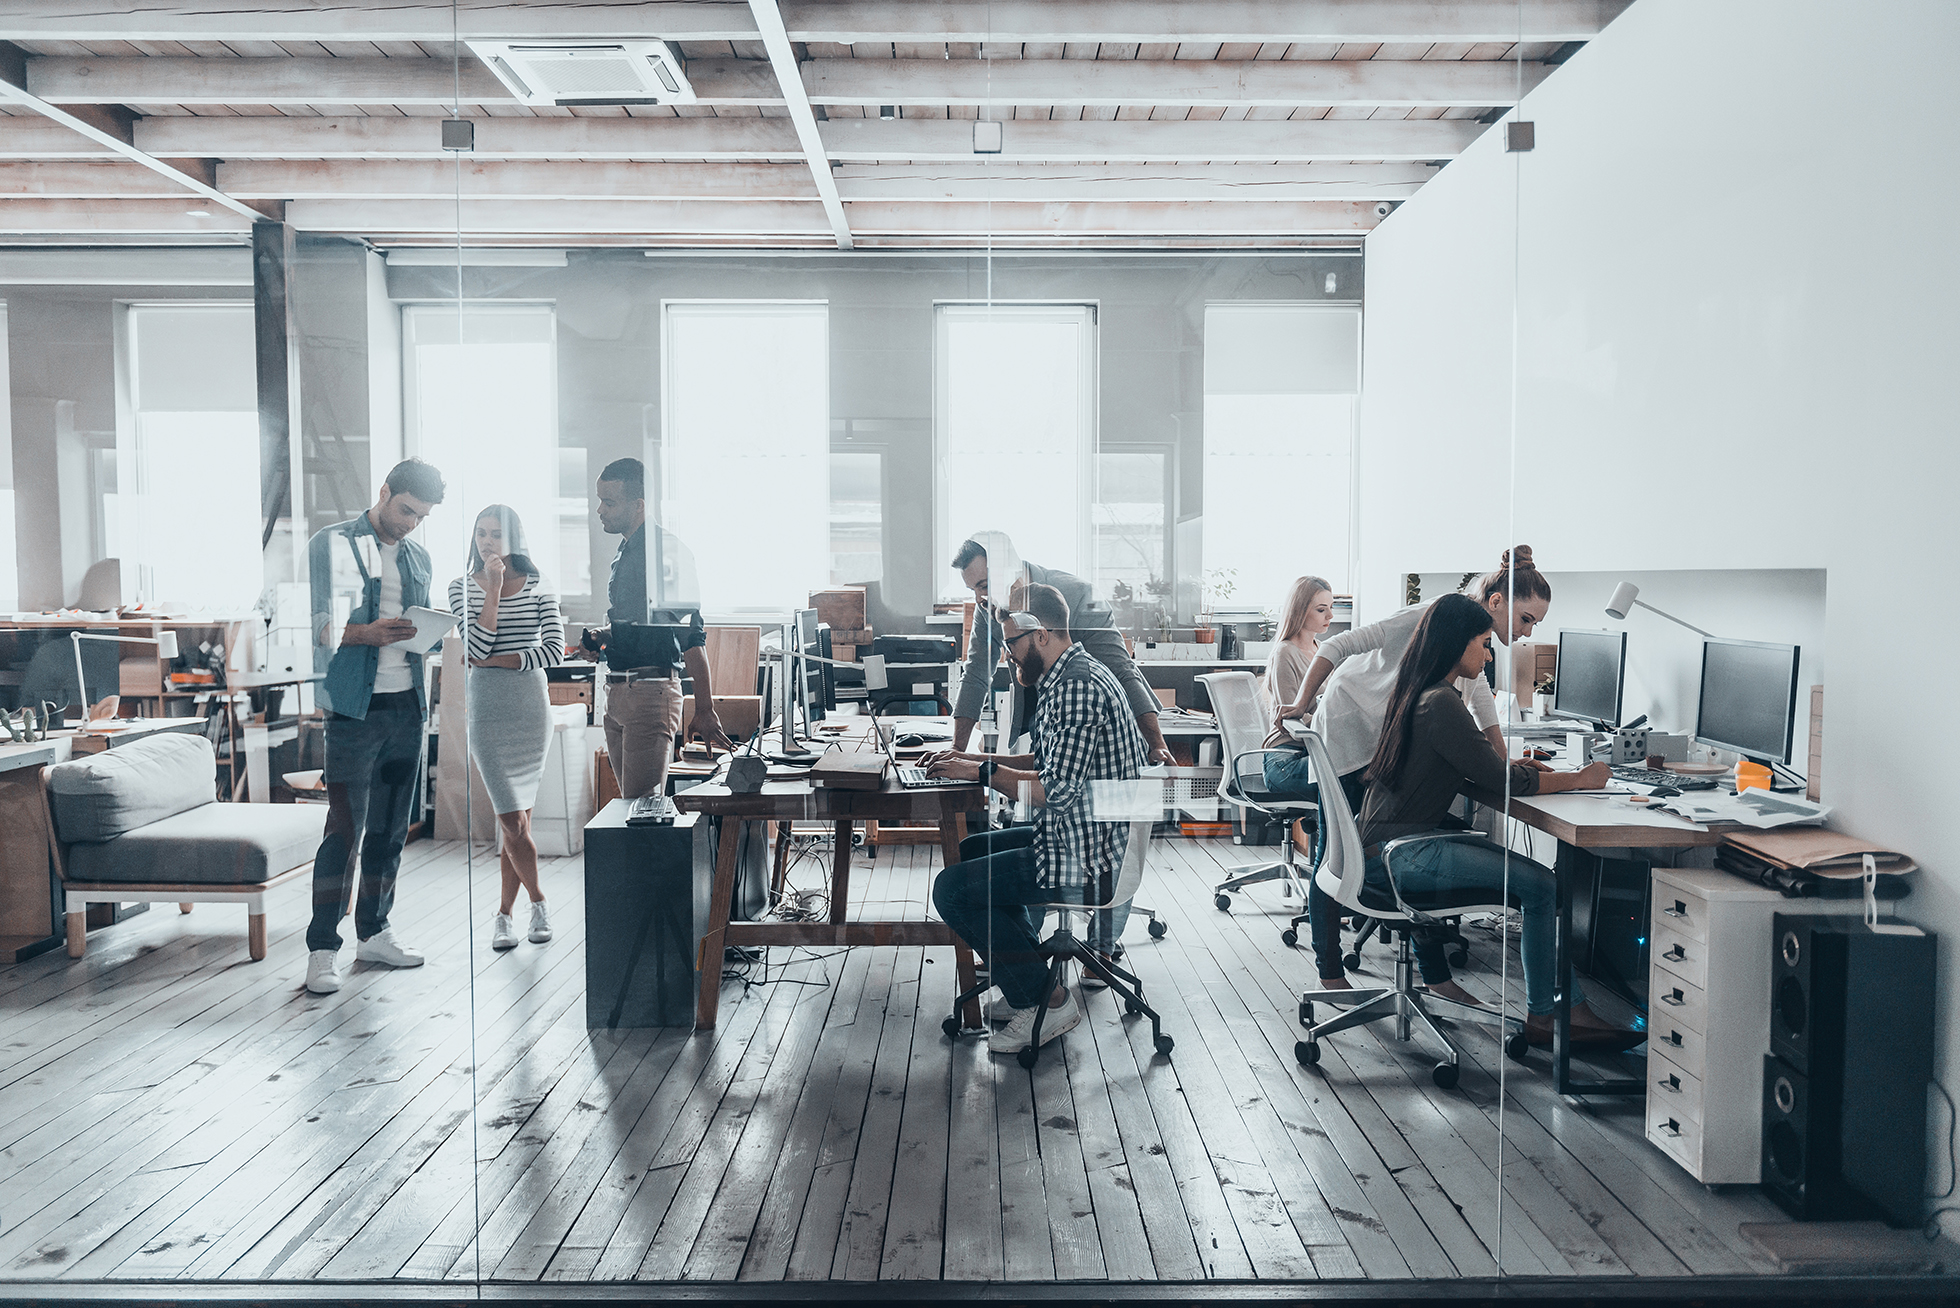 Open concept office at an IT company with a team of young professionals